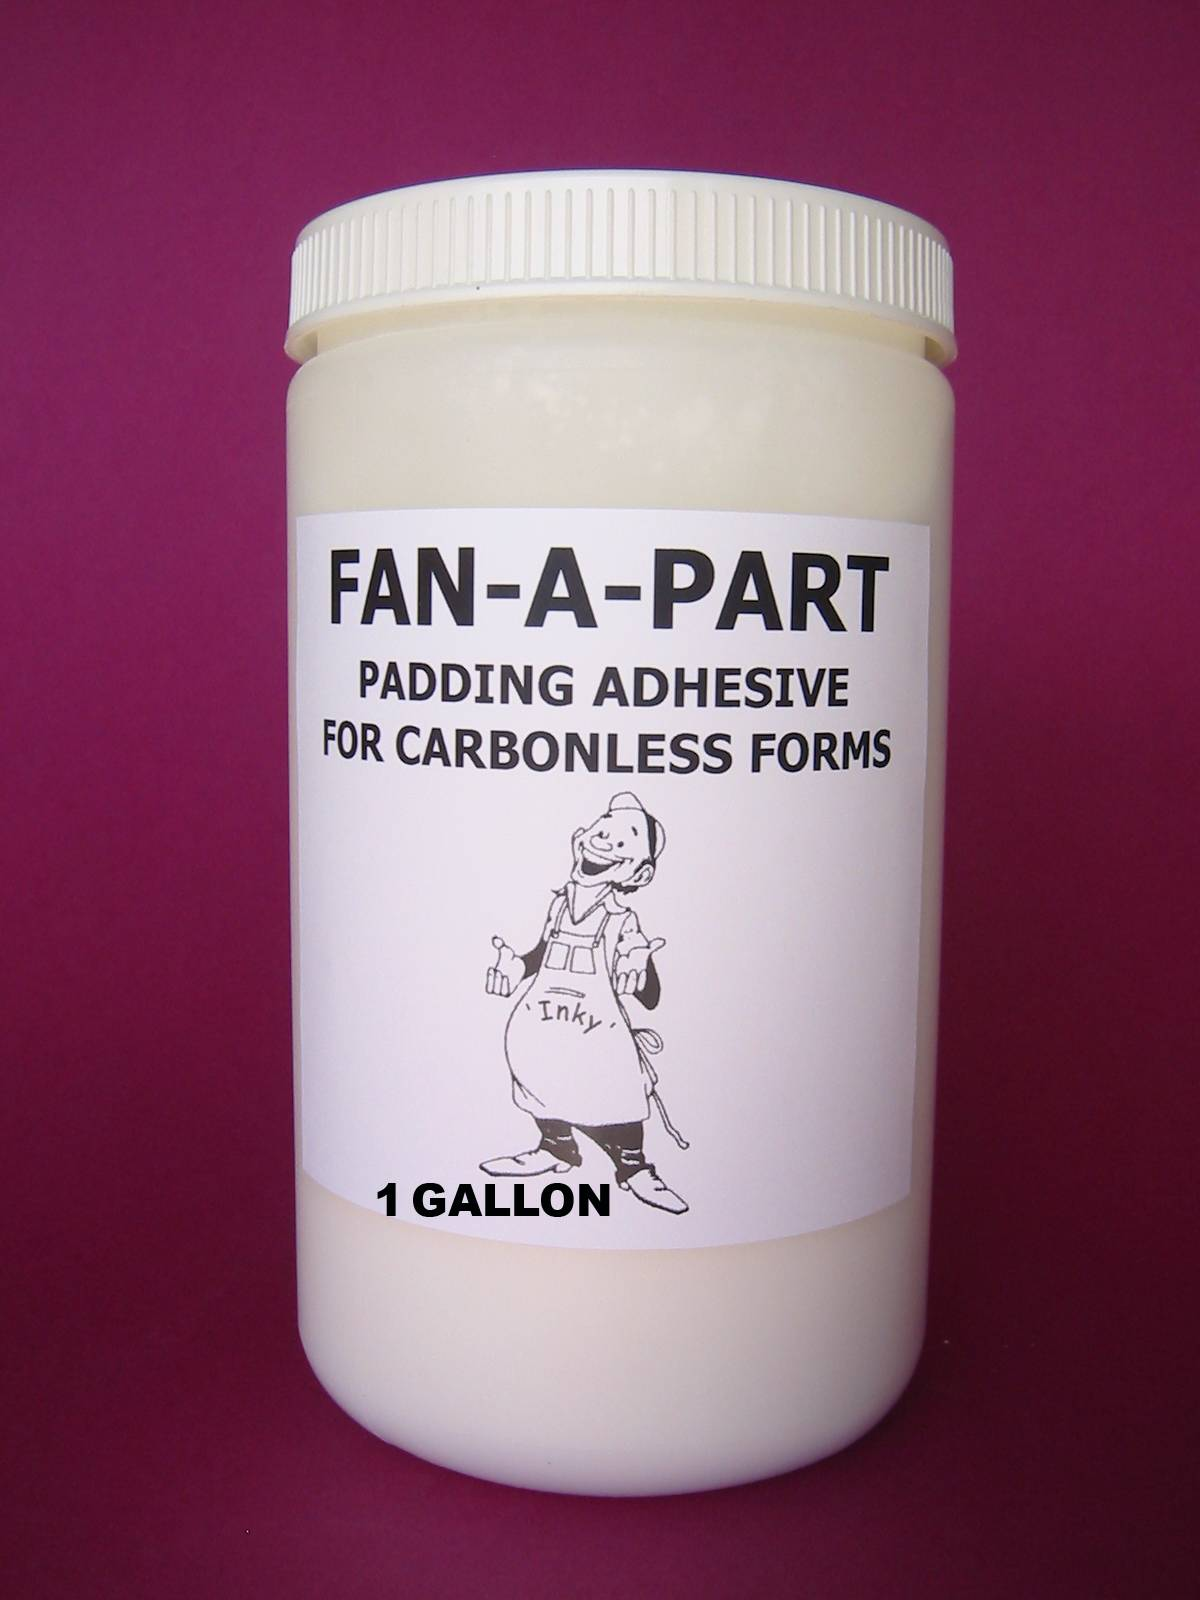 FAN-A-PART ADHESIVE (GALLON) 3M, NCR, MEAD Papers